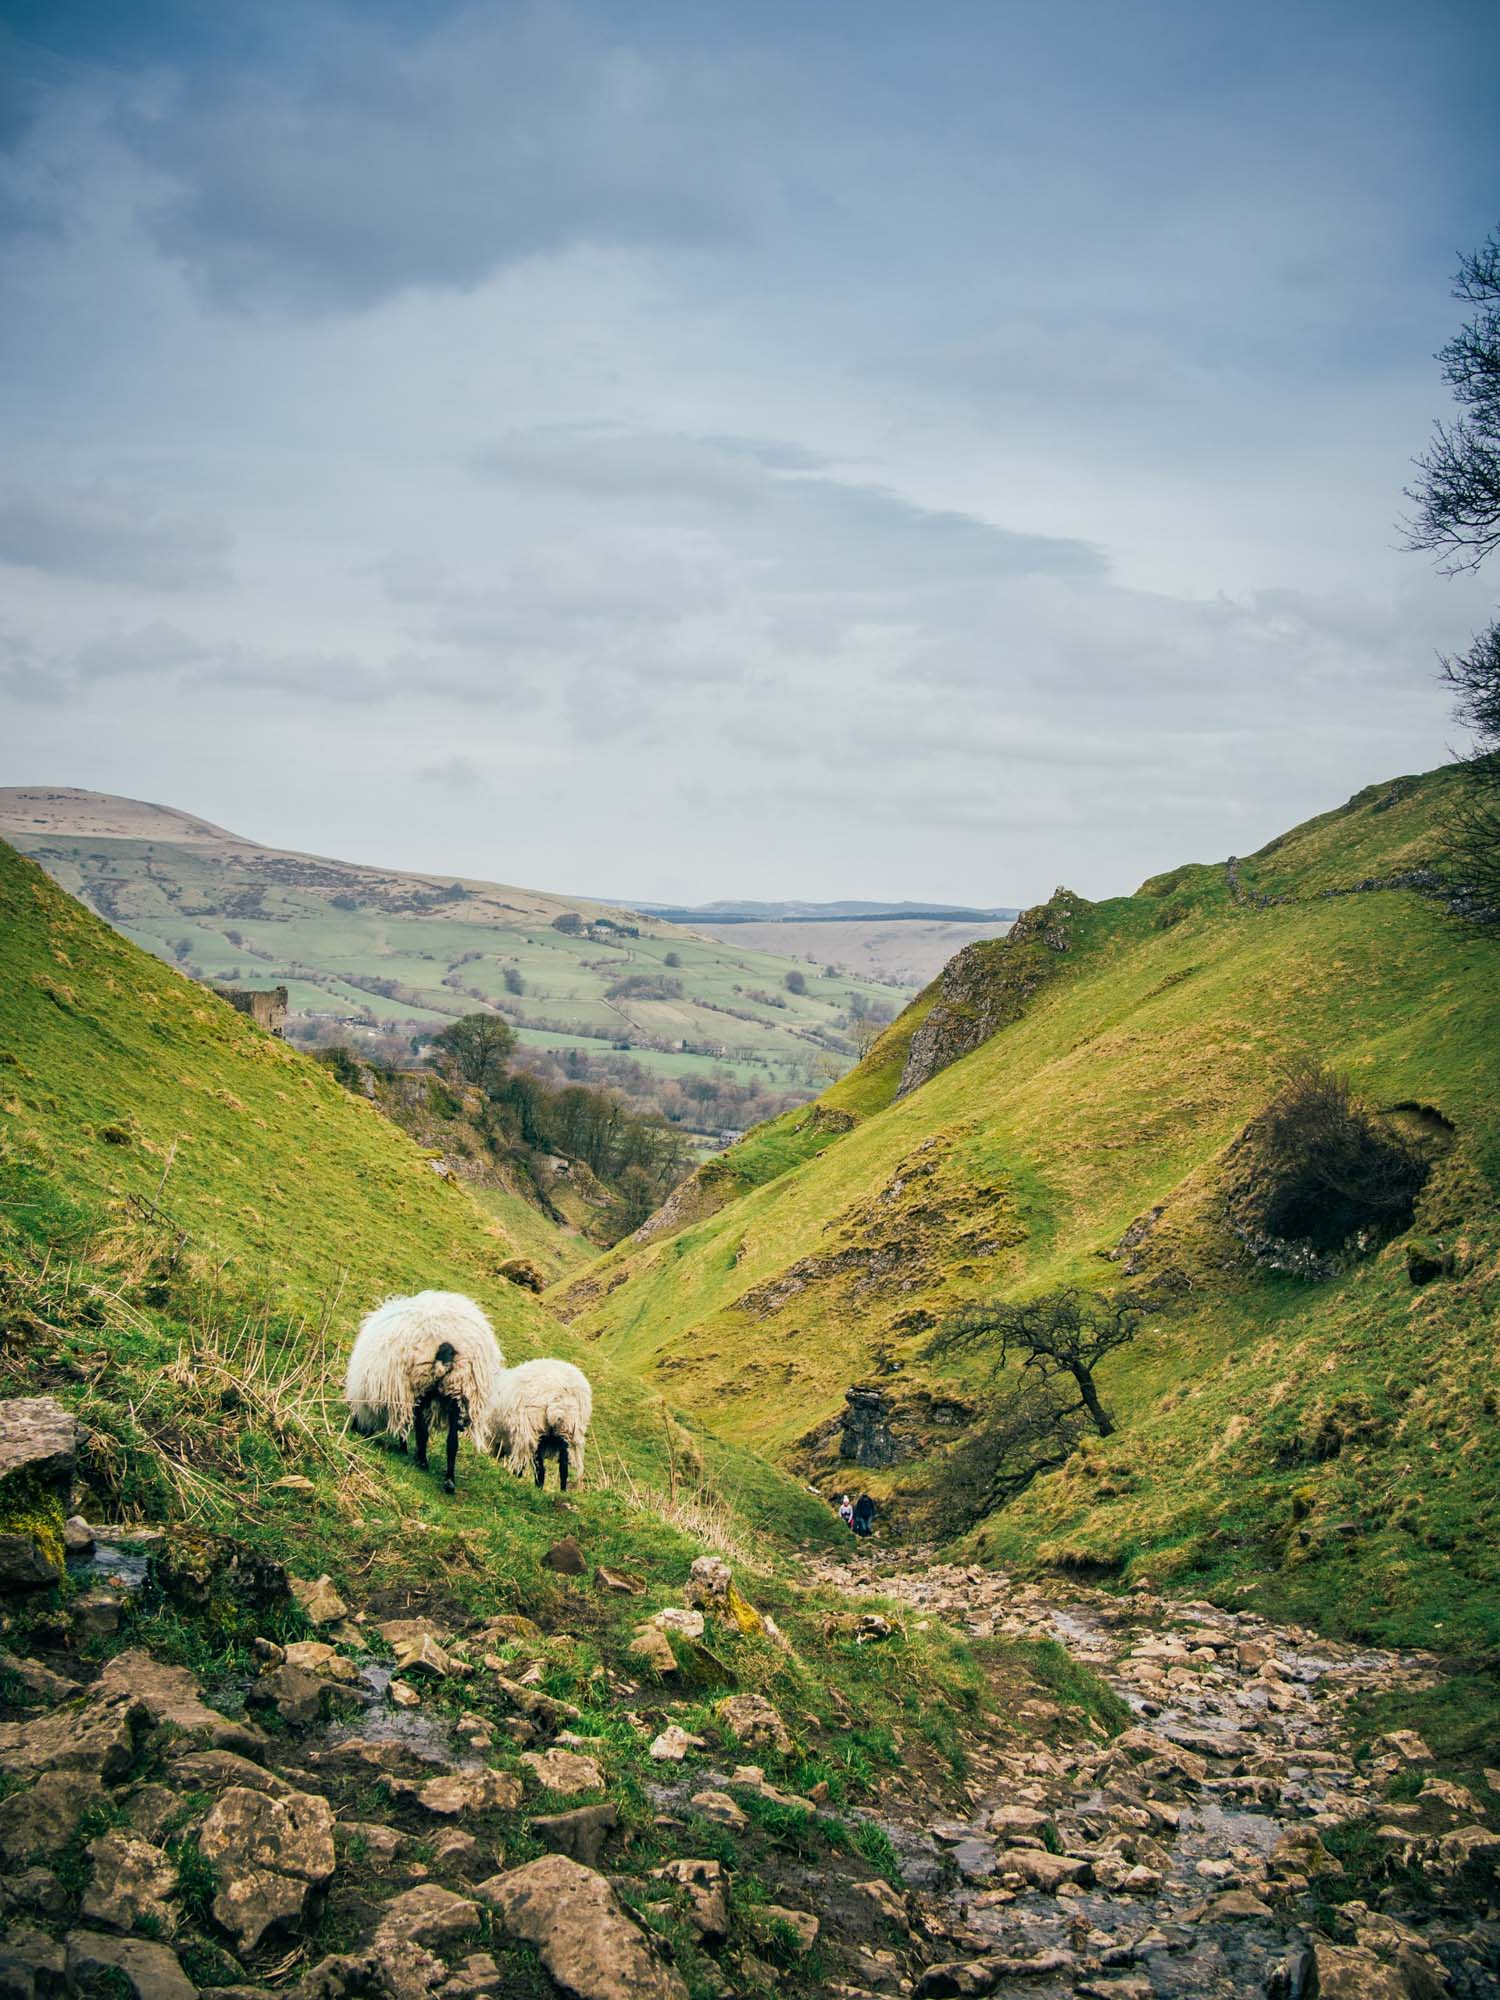 Road Trip Around The Derbyshire Dales